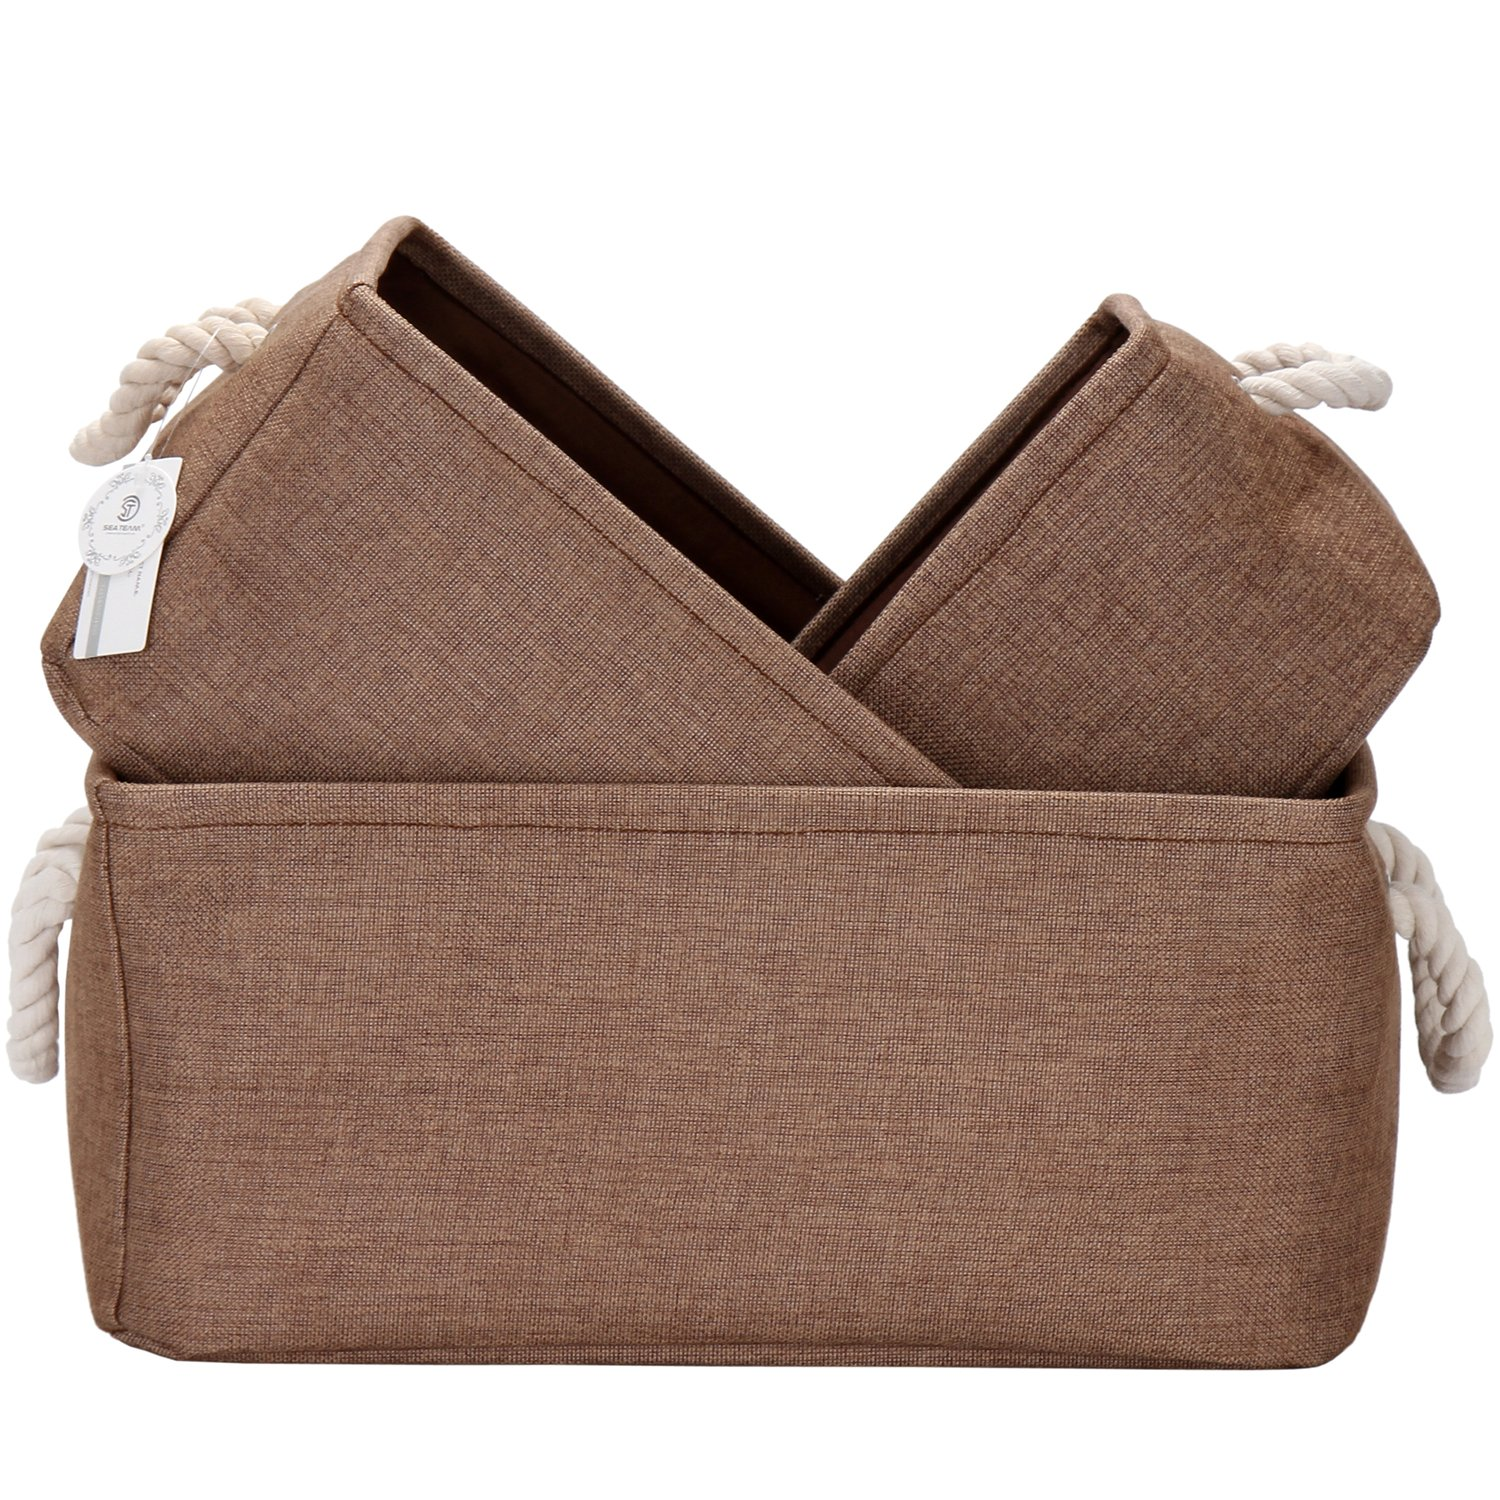 Sea Team Foldable Multi-sized Square New Brown 100% Natural Linen & Cotton Fabric Storage Bins Storage Baskets Organizers - Set of 3 (Beige) ST-SB0002A